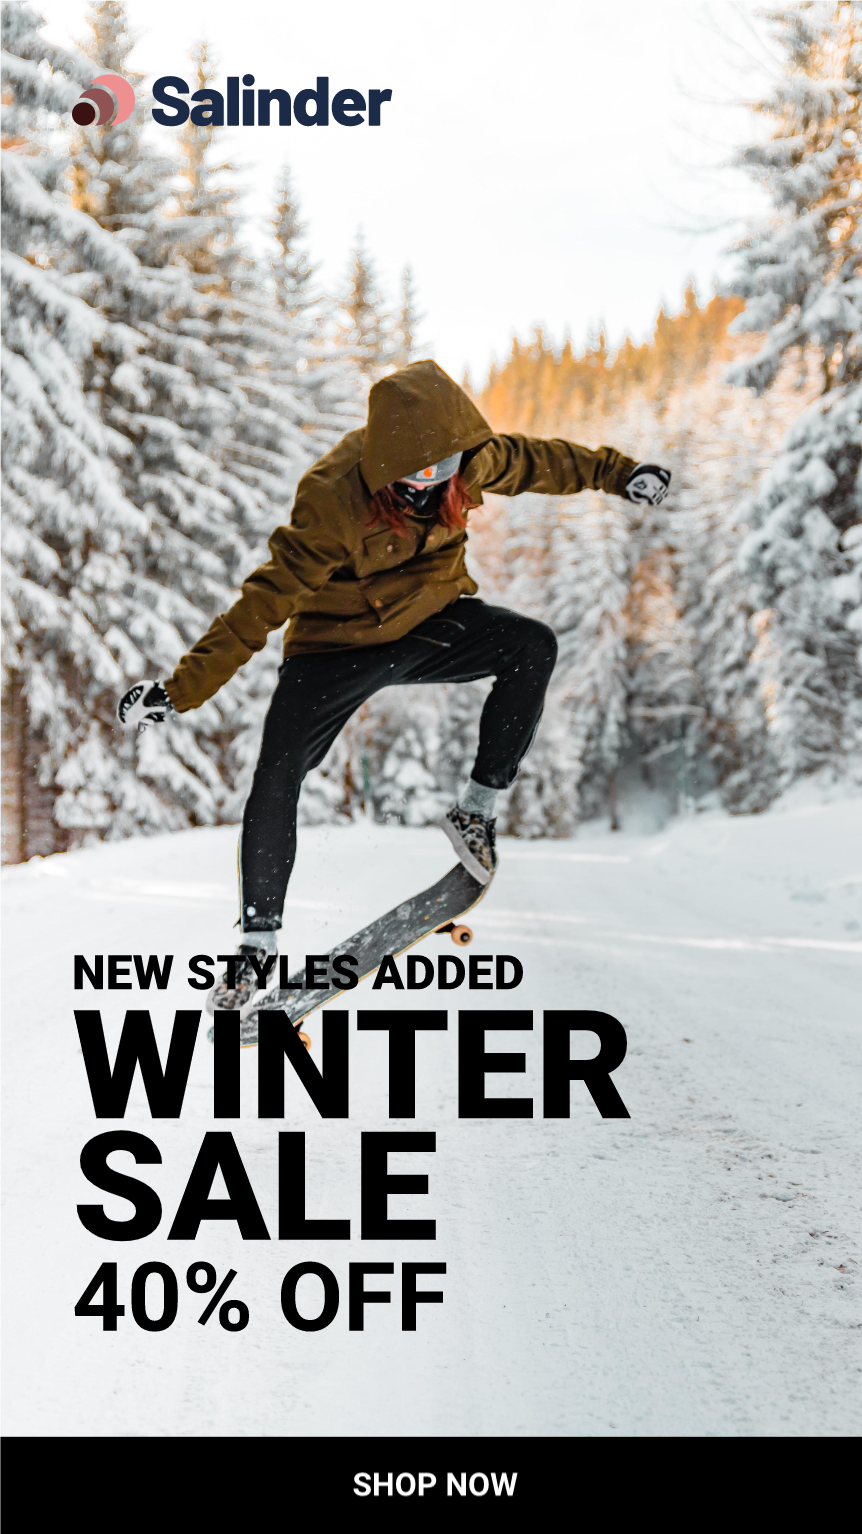 Template Promo - Winter sale